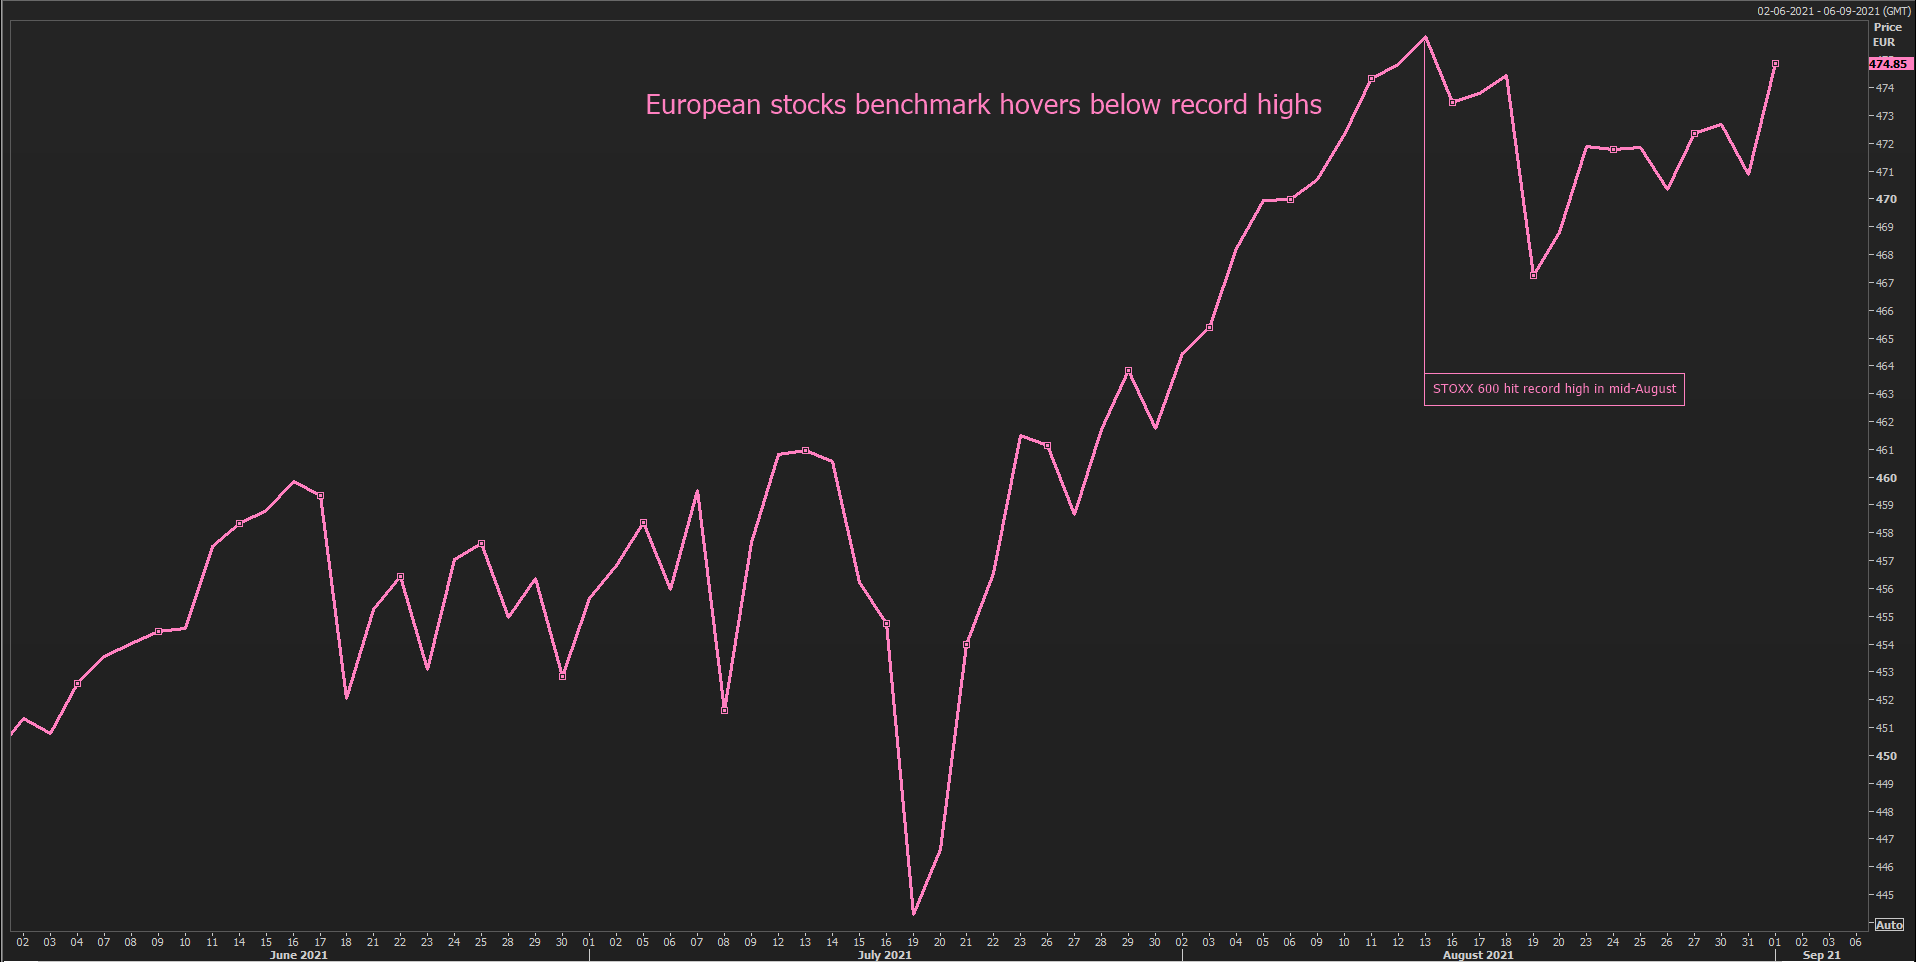 STOXX 600 hit record high in mi-August